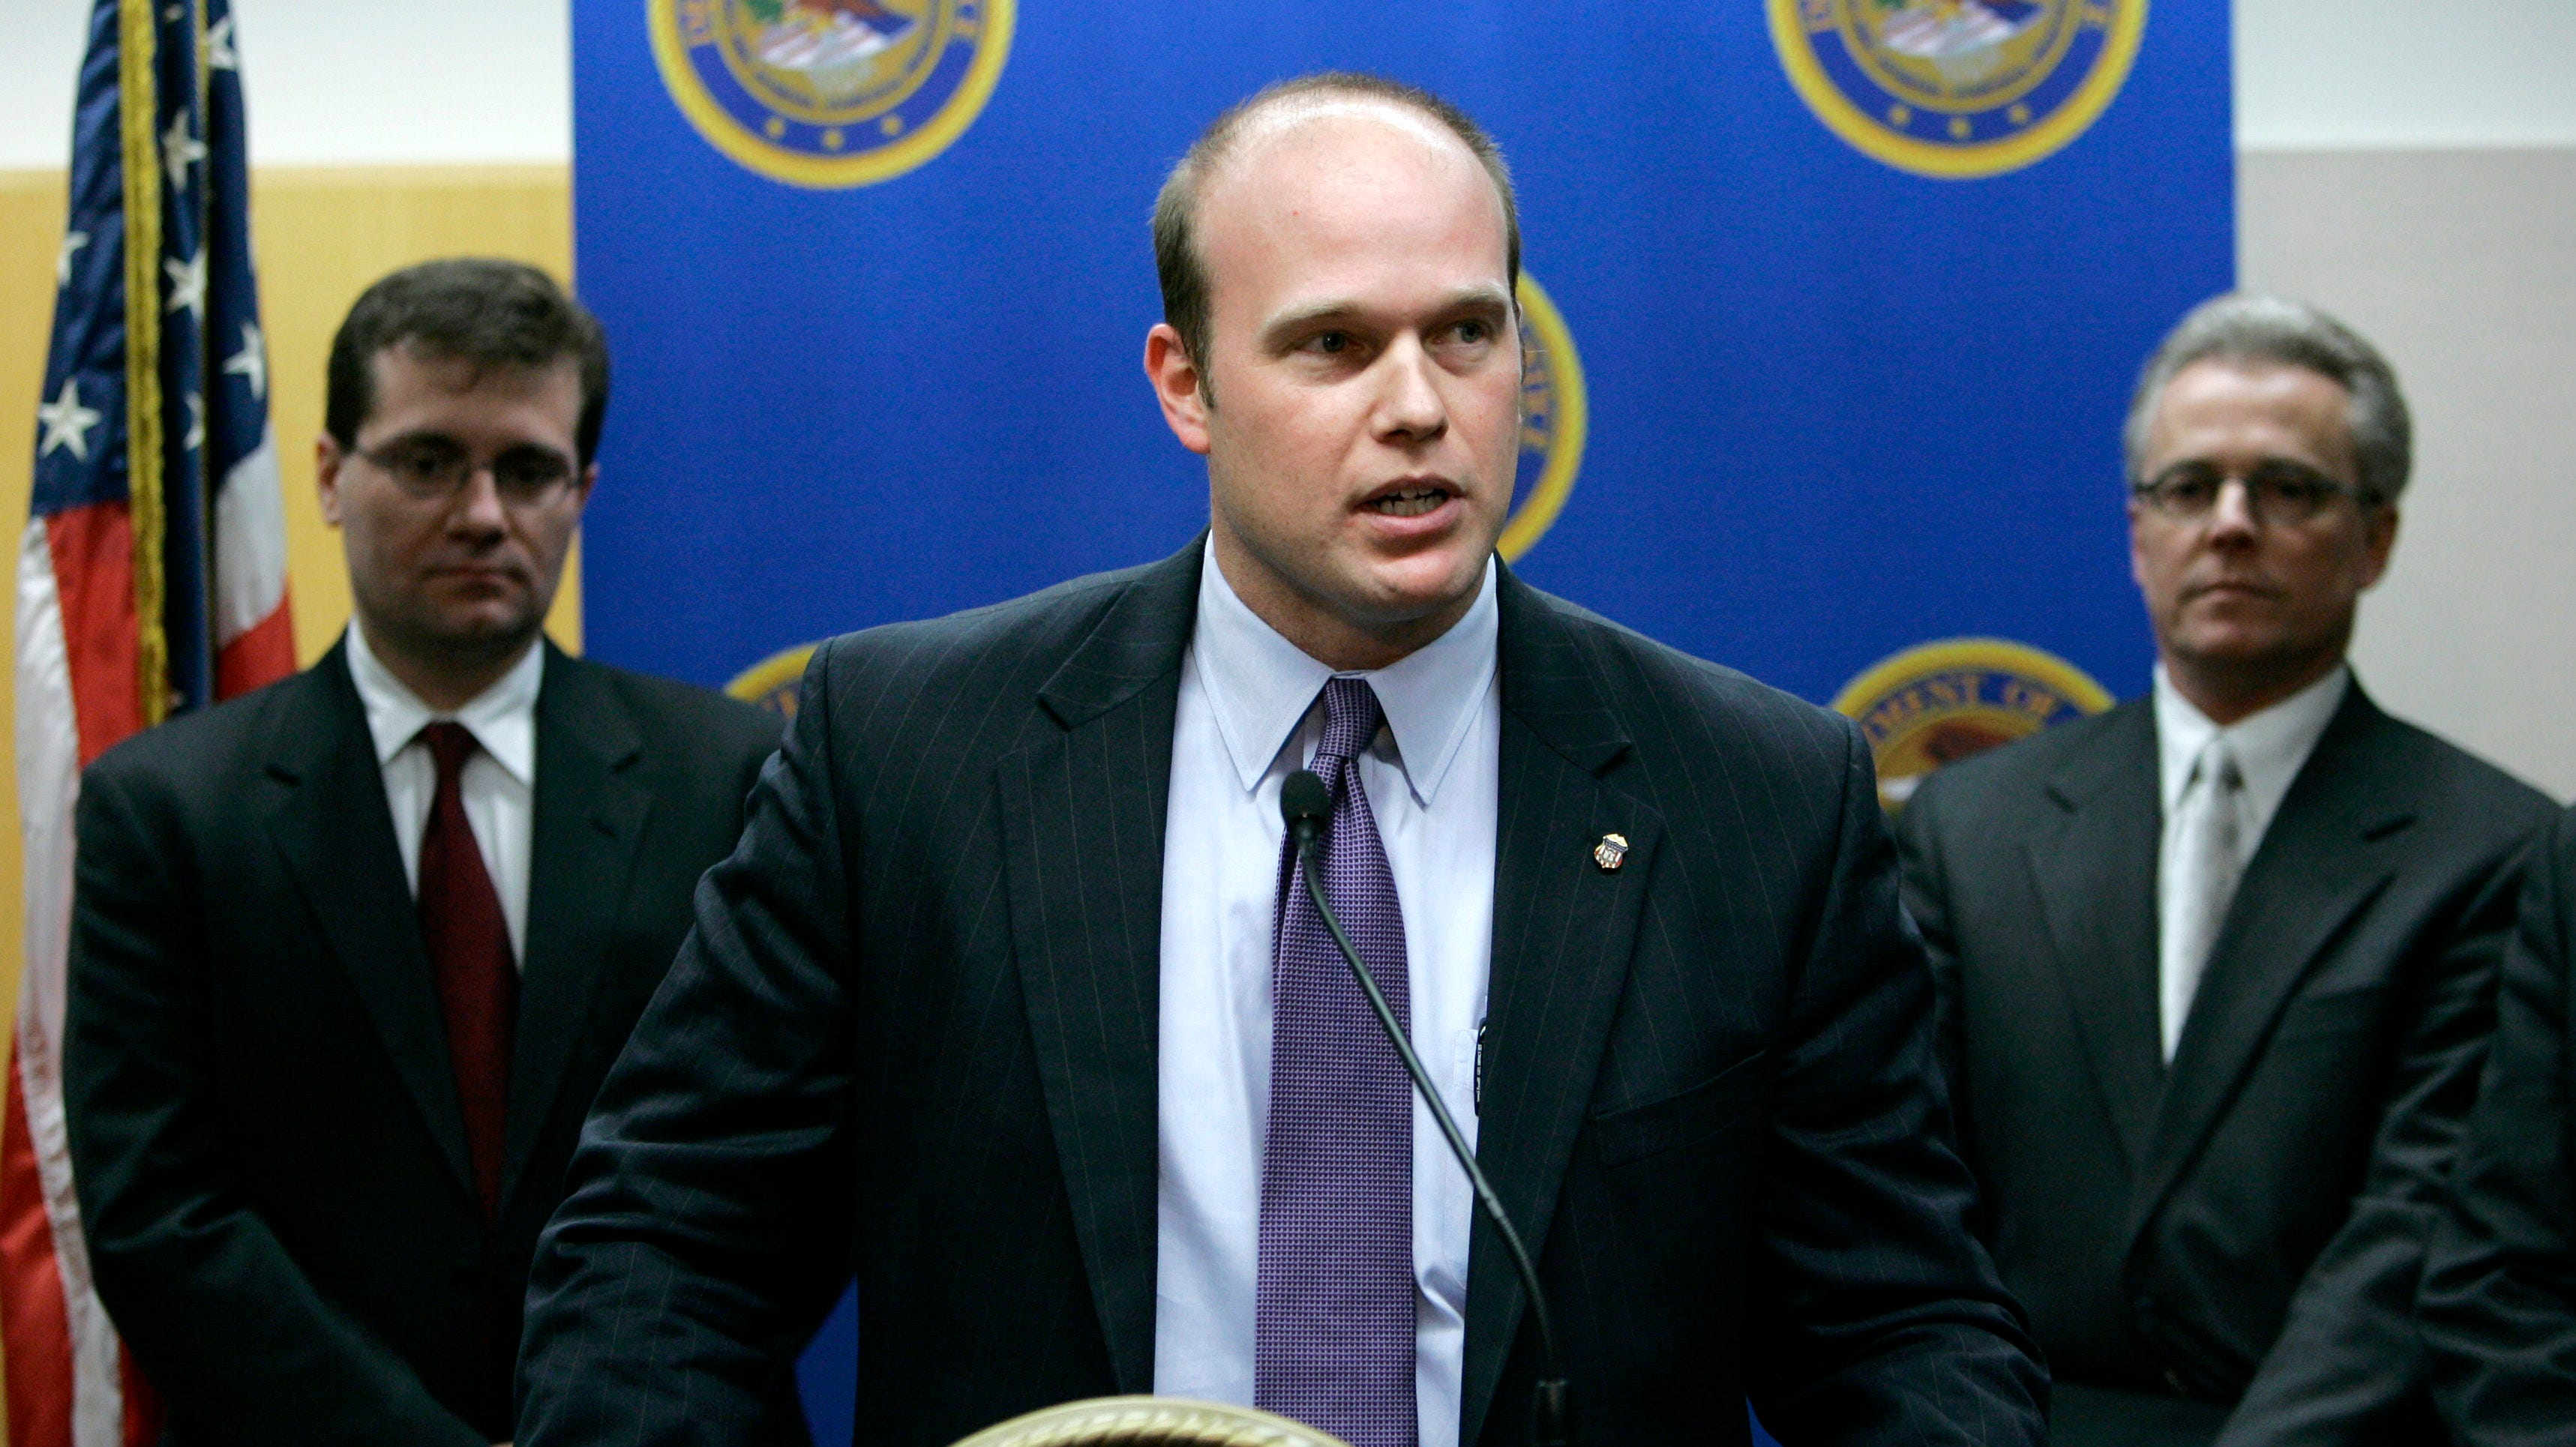 U.S. Attorney Matthew Whitaker speaks during a news conference as James Vandenberg, Office of Inspector General for the Dept. of Labor, left, and Iowa state Auditor David Vaudt, right, look on Jan. 16, 2007, in Des Moines, Iowa. President Donald Trump named Whitaker acting attorney general Wednesday, after Jeff Sessions resigned.